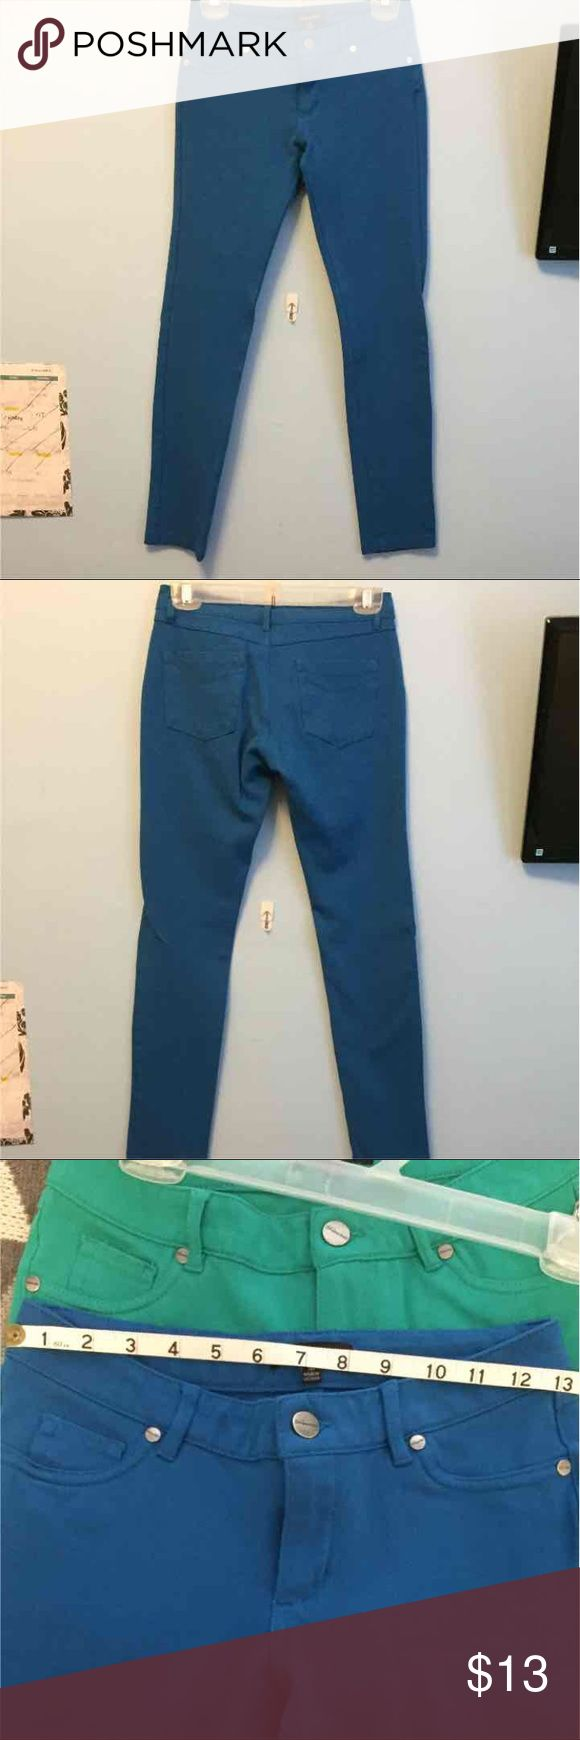 """Electric blue cotton stretch pants Electric blue cotton stretch pants. Size medium, waist measurement 26"""". Inseam 27"""". Front pockets are sewn closed. Lightly worn but in excellent condition  Price is negotiable and I'm willing to bundle. No swaps  #coloredpants #cottonpants Pants Skinny"""